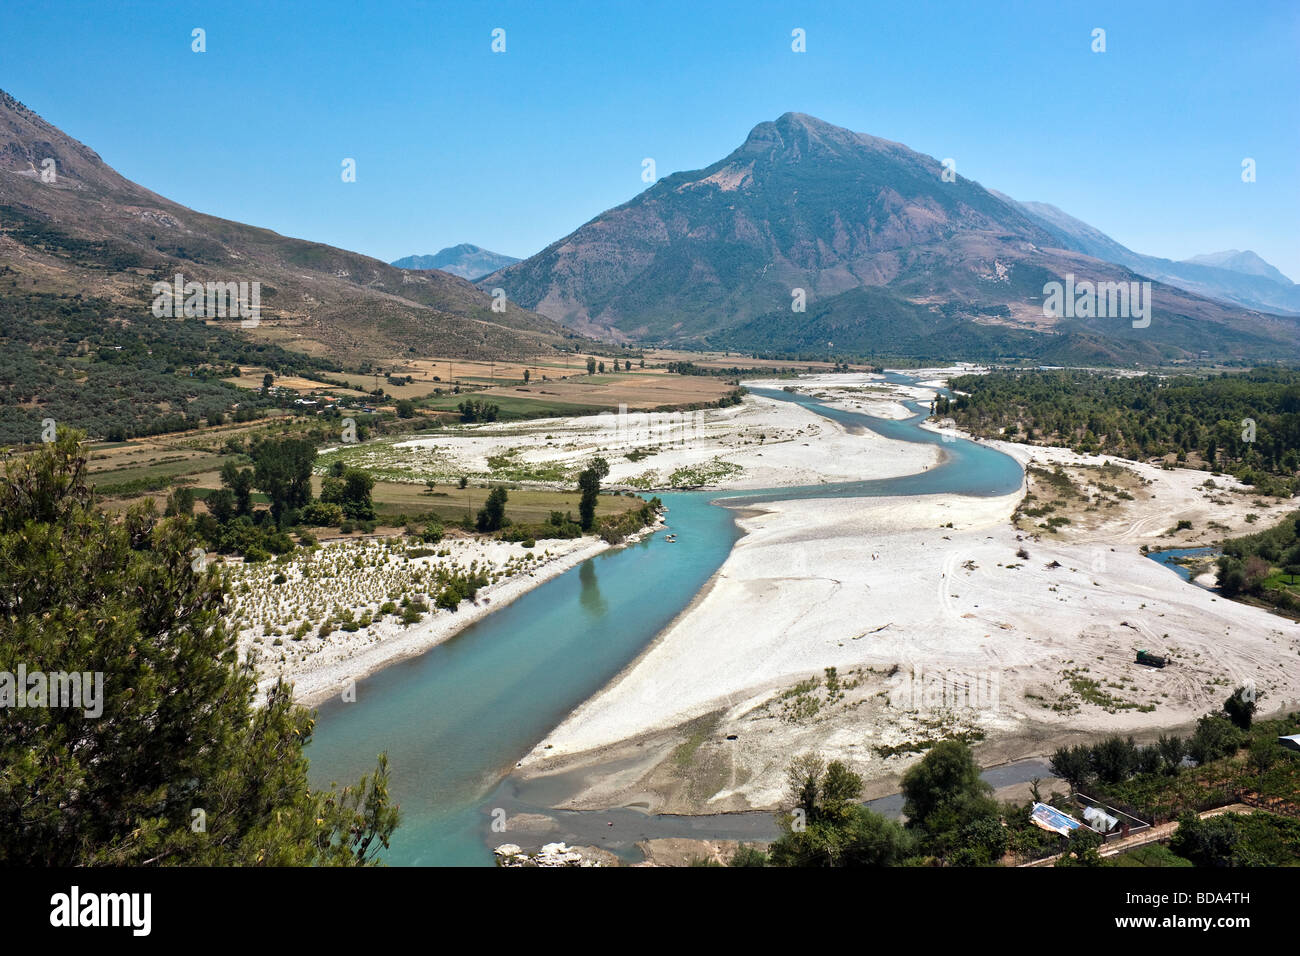 The Drin River Valley of Albania. - Stock Image